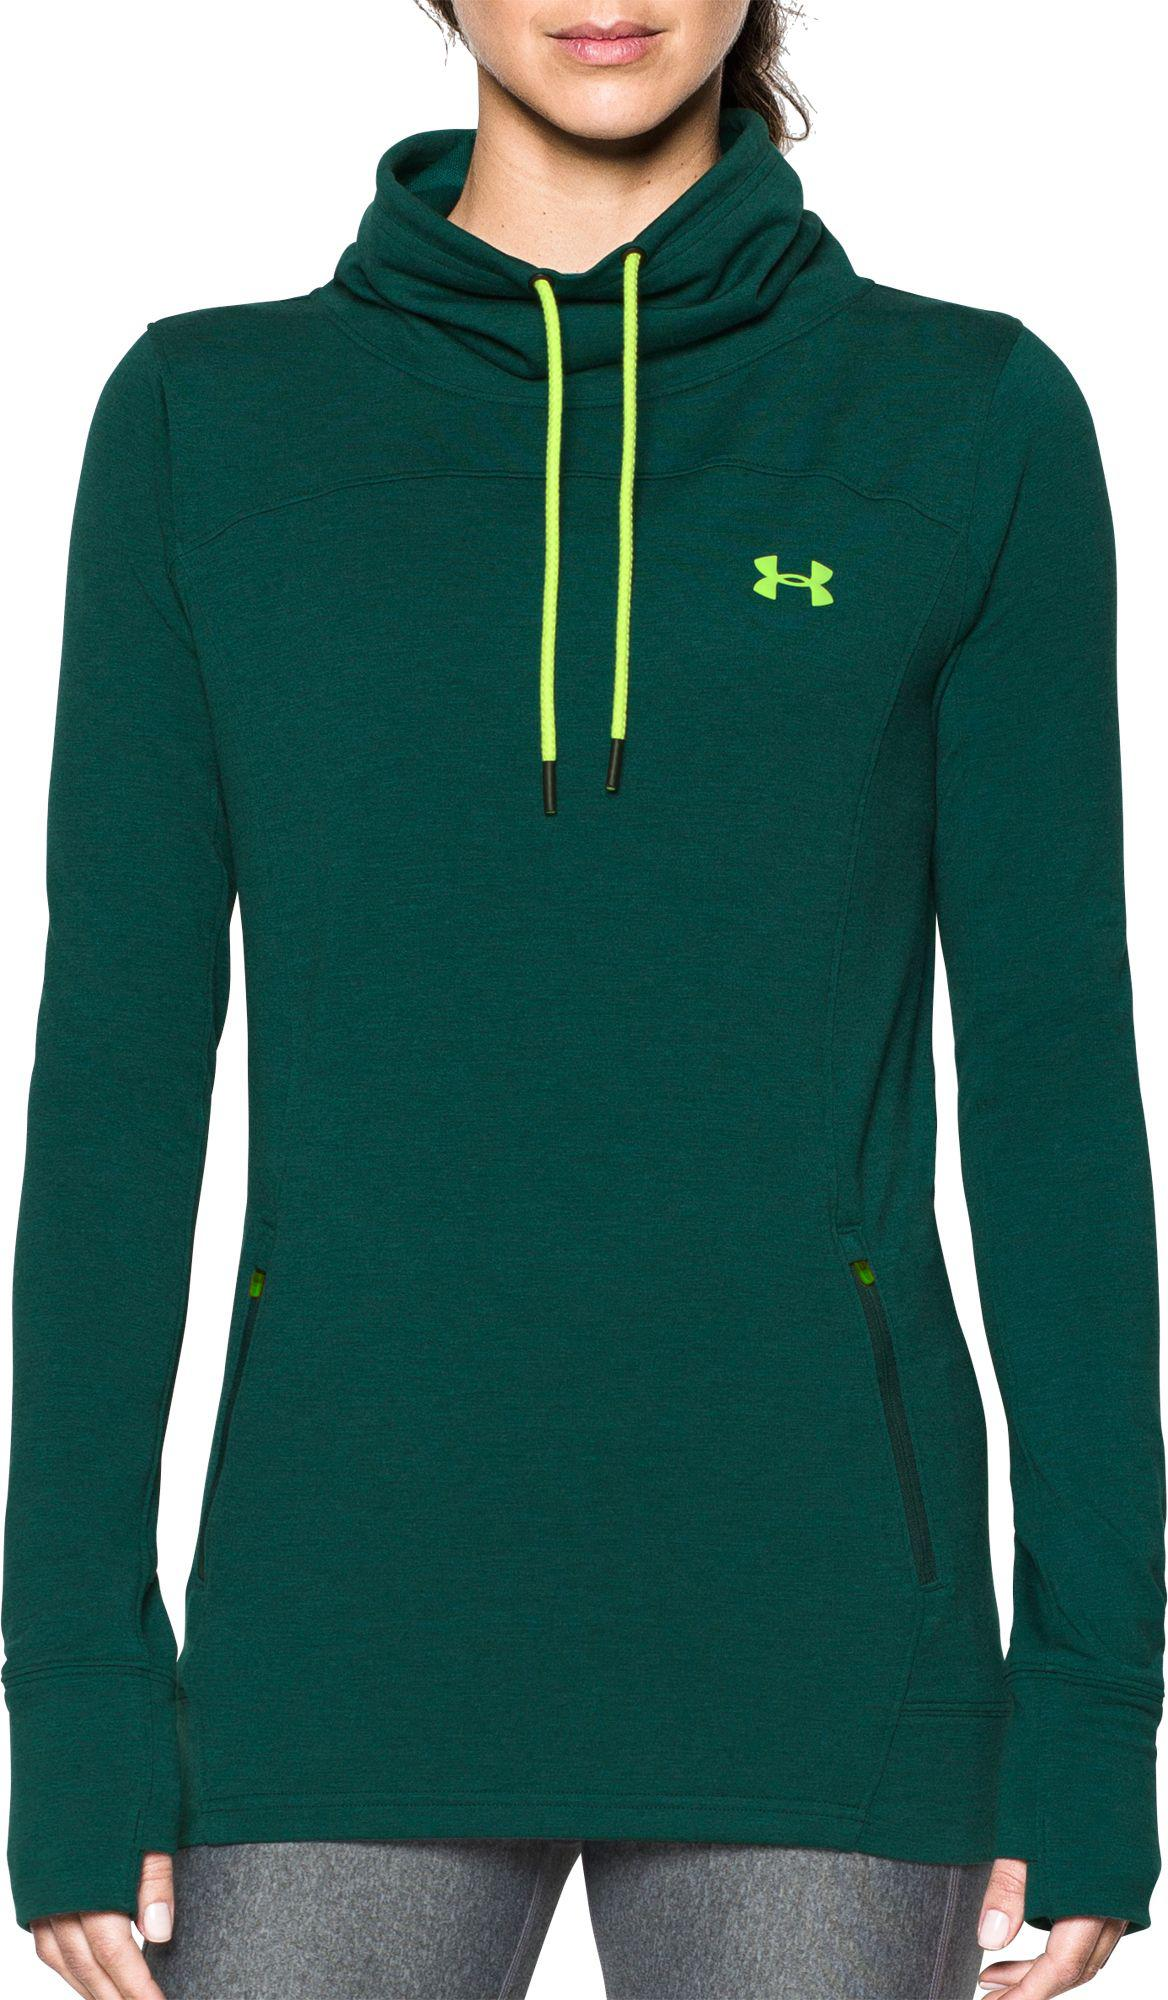 7916350c348c Under Armour - Green Women s Ua Featherweight Fleece Slouchy Popover - Lyst